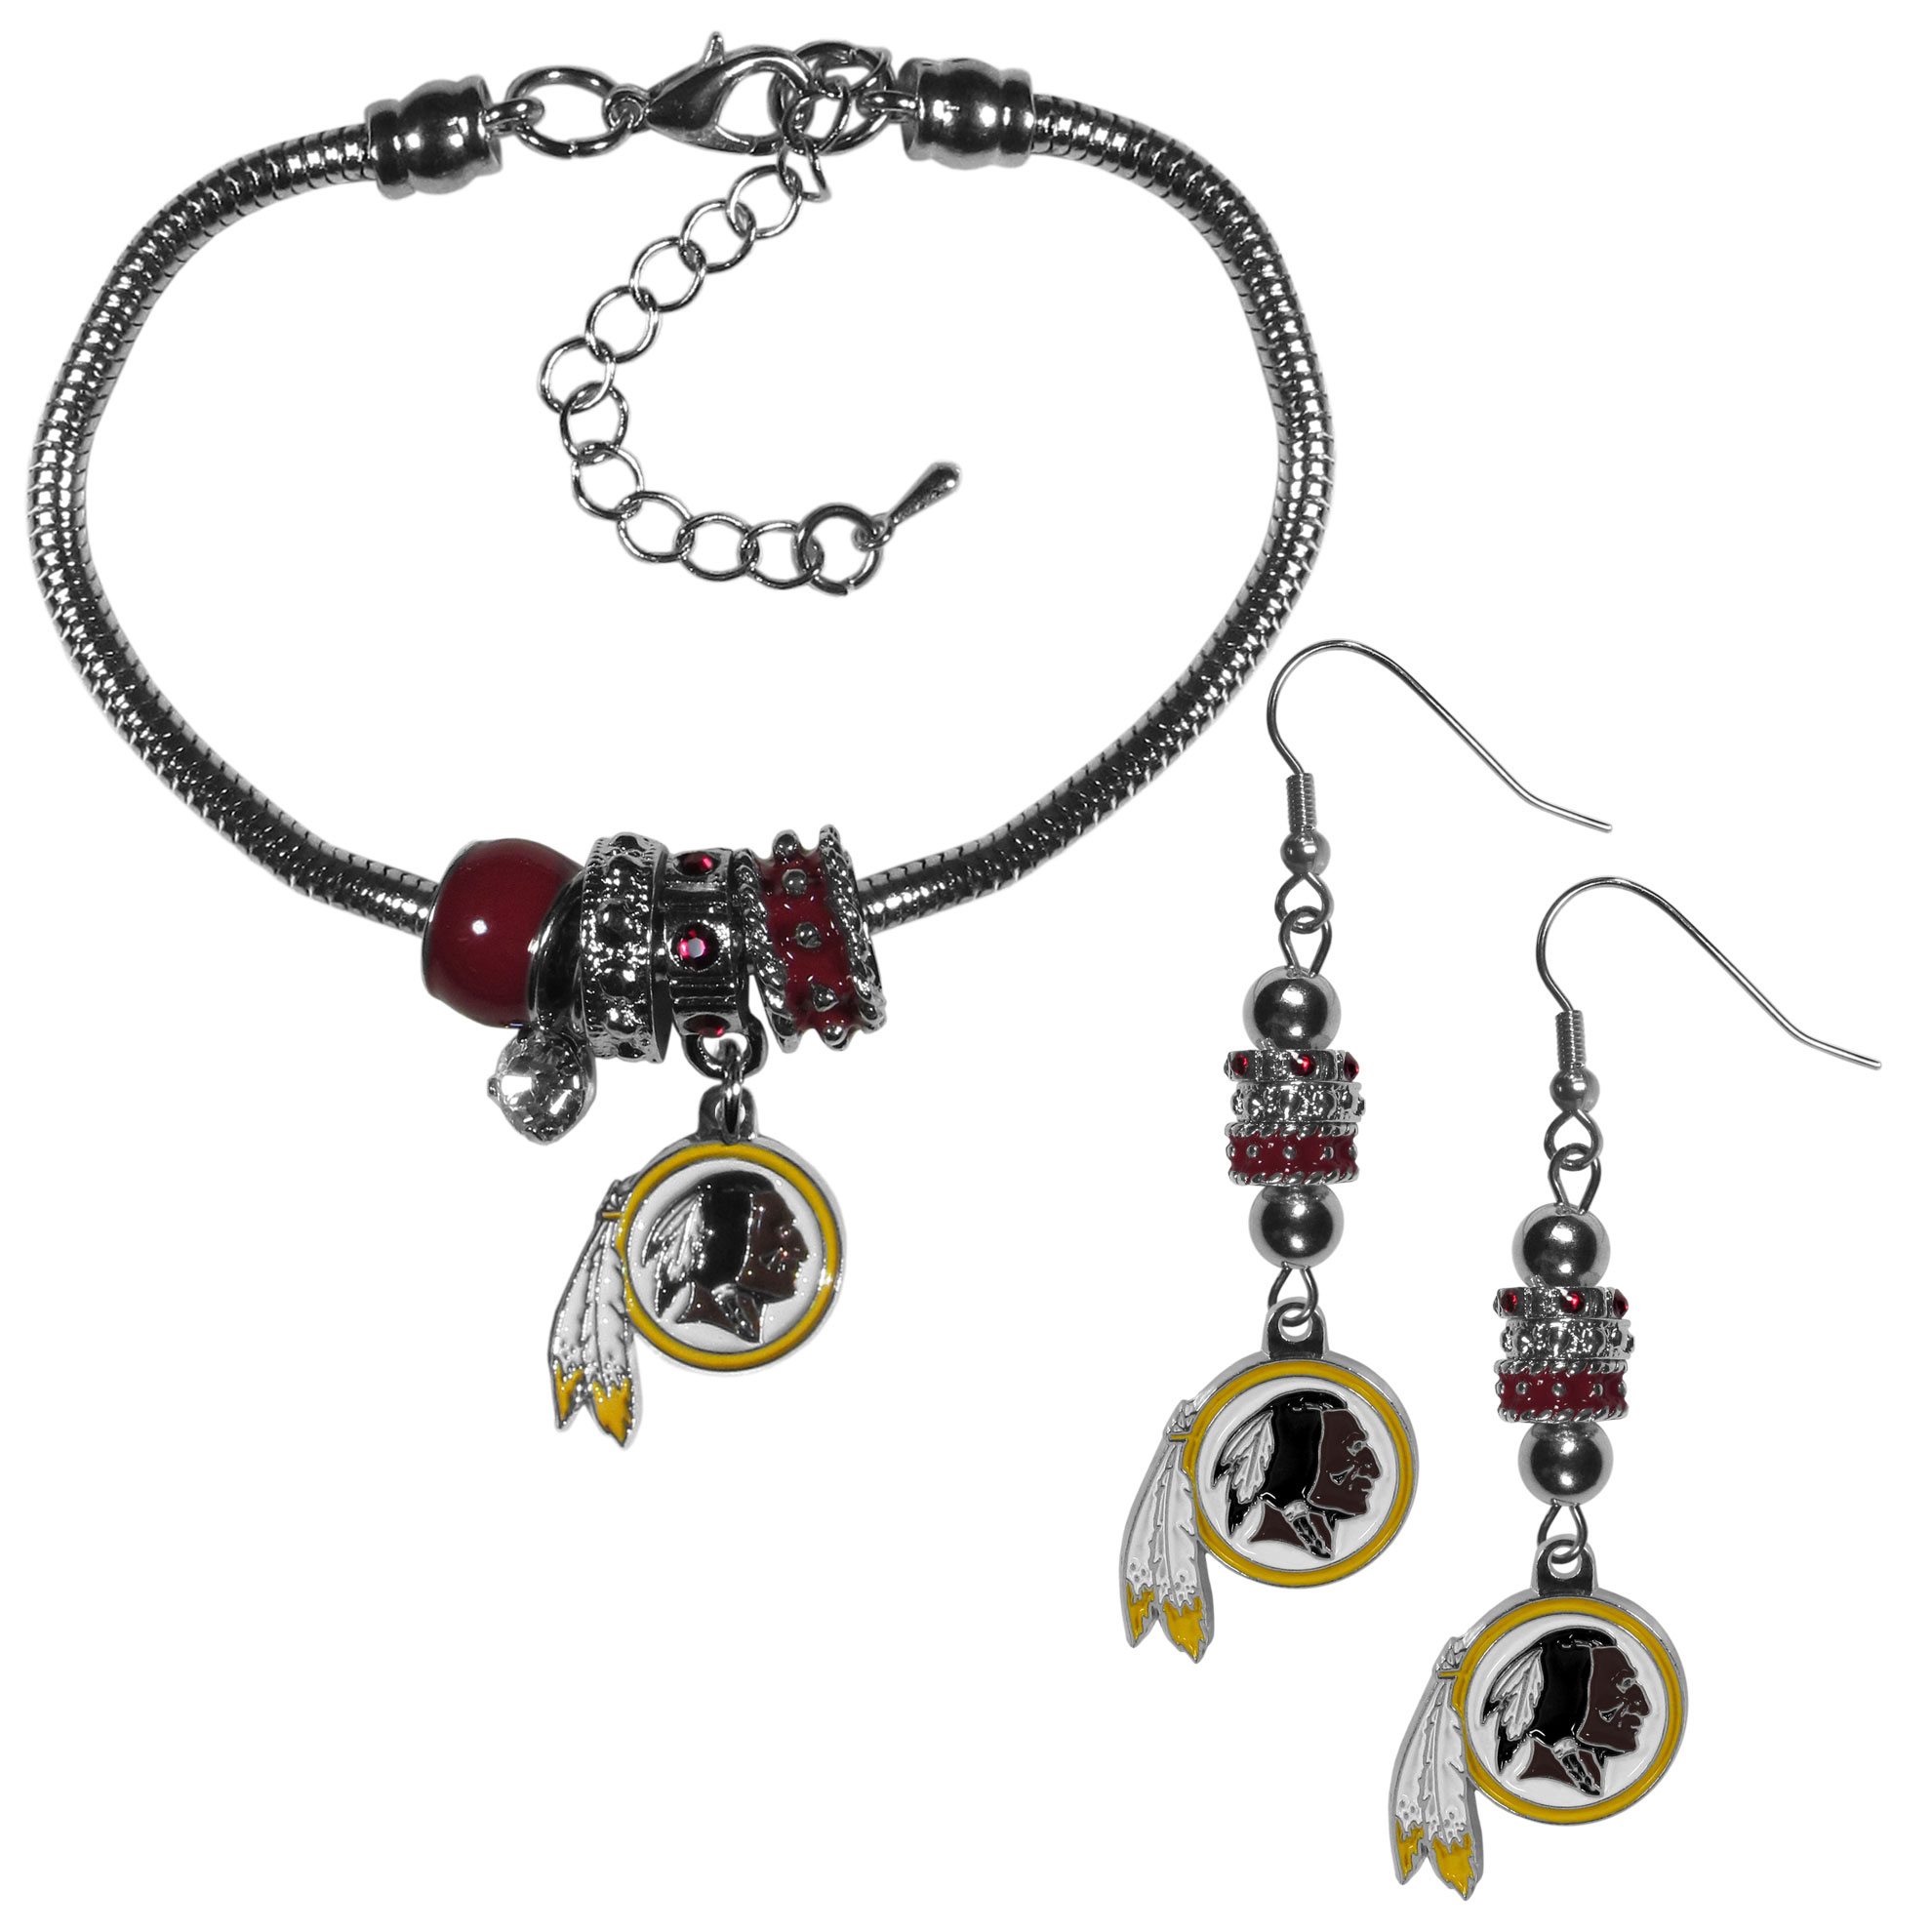 Washington Redskins Euro Bead Earrings and Bracelet Set - We combine the popular Euro bead style with your love of the Washington Redskins with this beautiful jewelry set that includes earrings and a matching bracelet. The stylish earrings feature hypoallergenic, nickel free fishhook posts and 3 team colored Euro beads and a metal team charm. The matching snake chain bracelet is 7.5 inches long with a 2 inch extender and 4 Euro beads with a rhinestone charm and team charm.